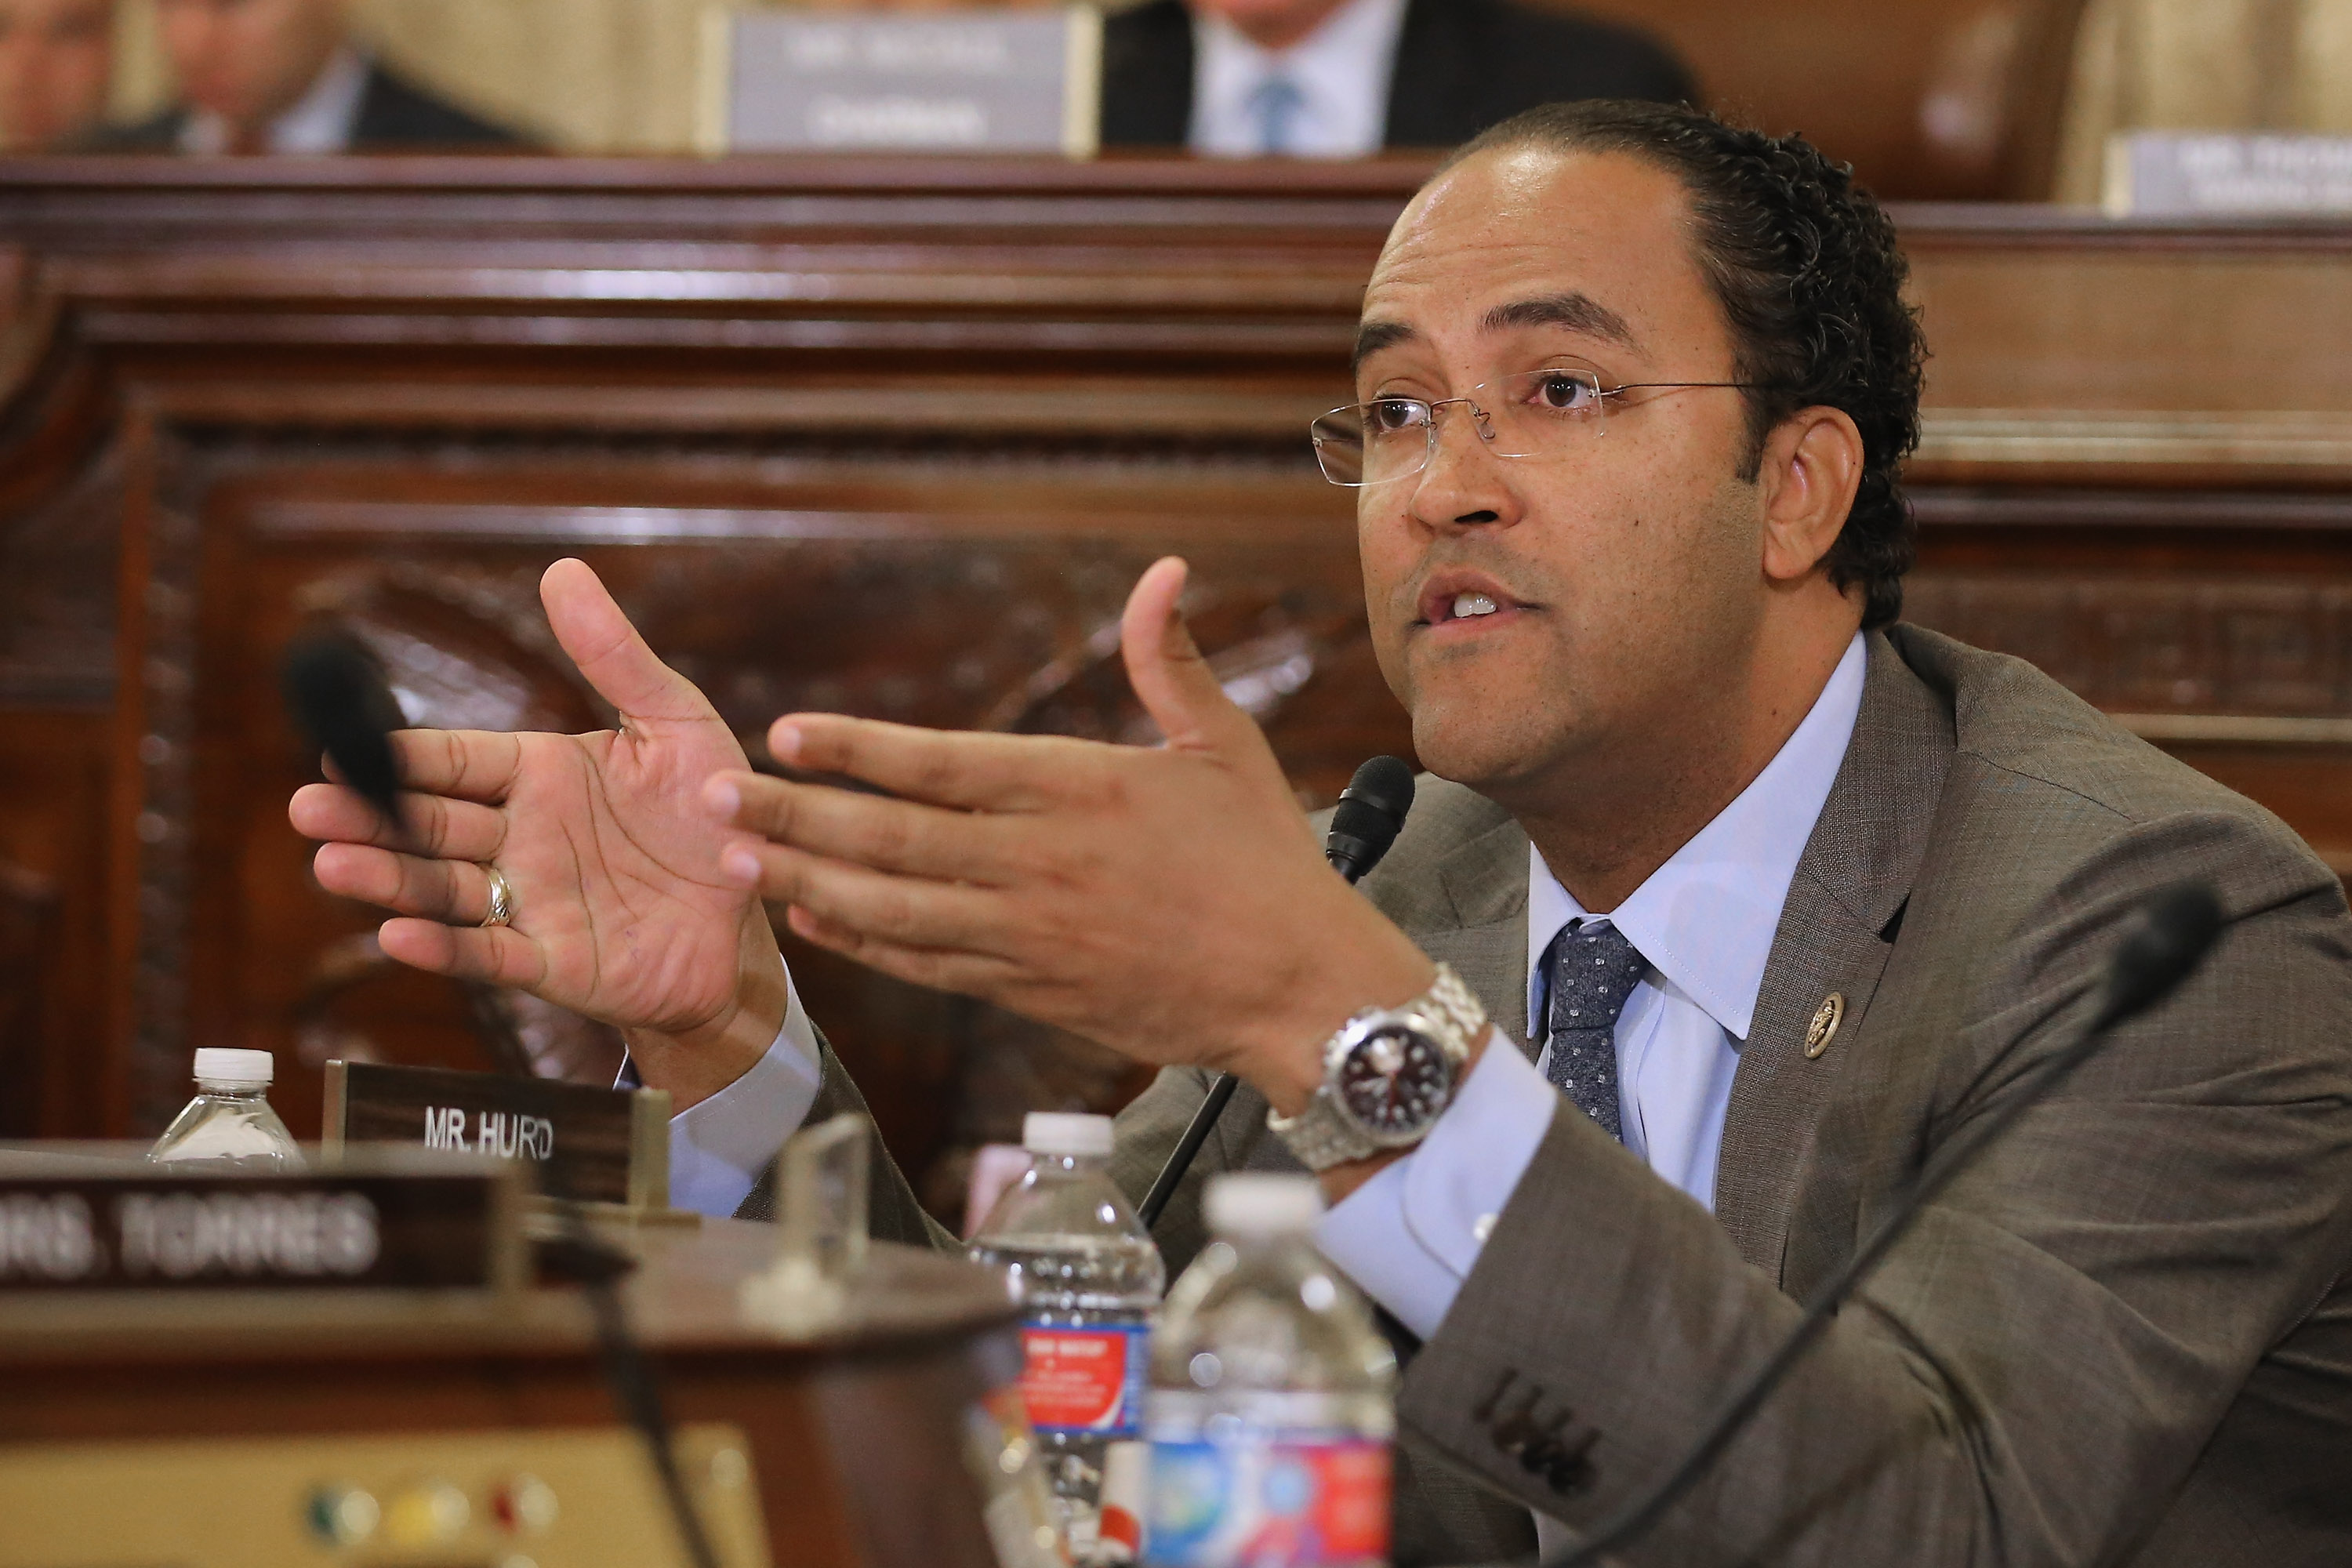 Will Hurd's MGT Act is just steps away from passage into law. (Chip Somodevilla/Getty Images)